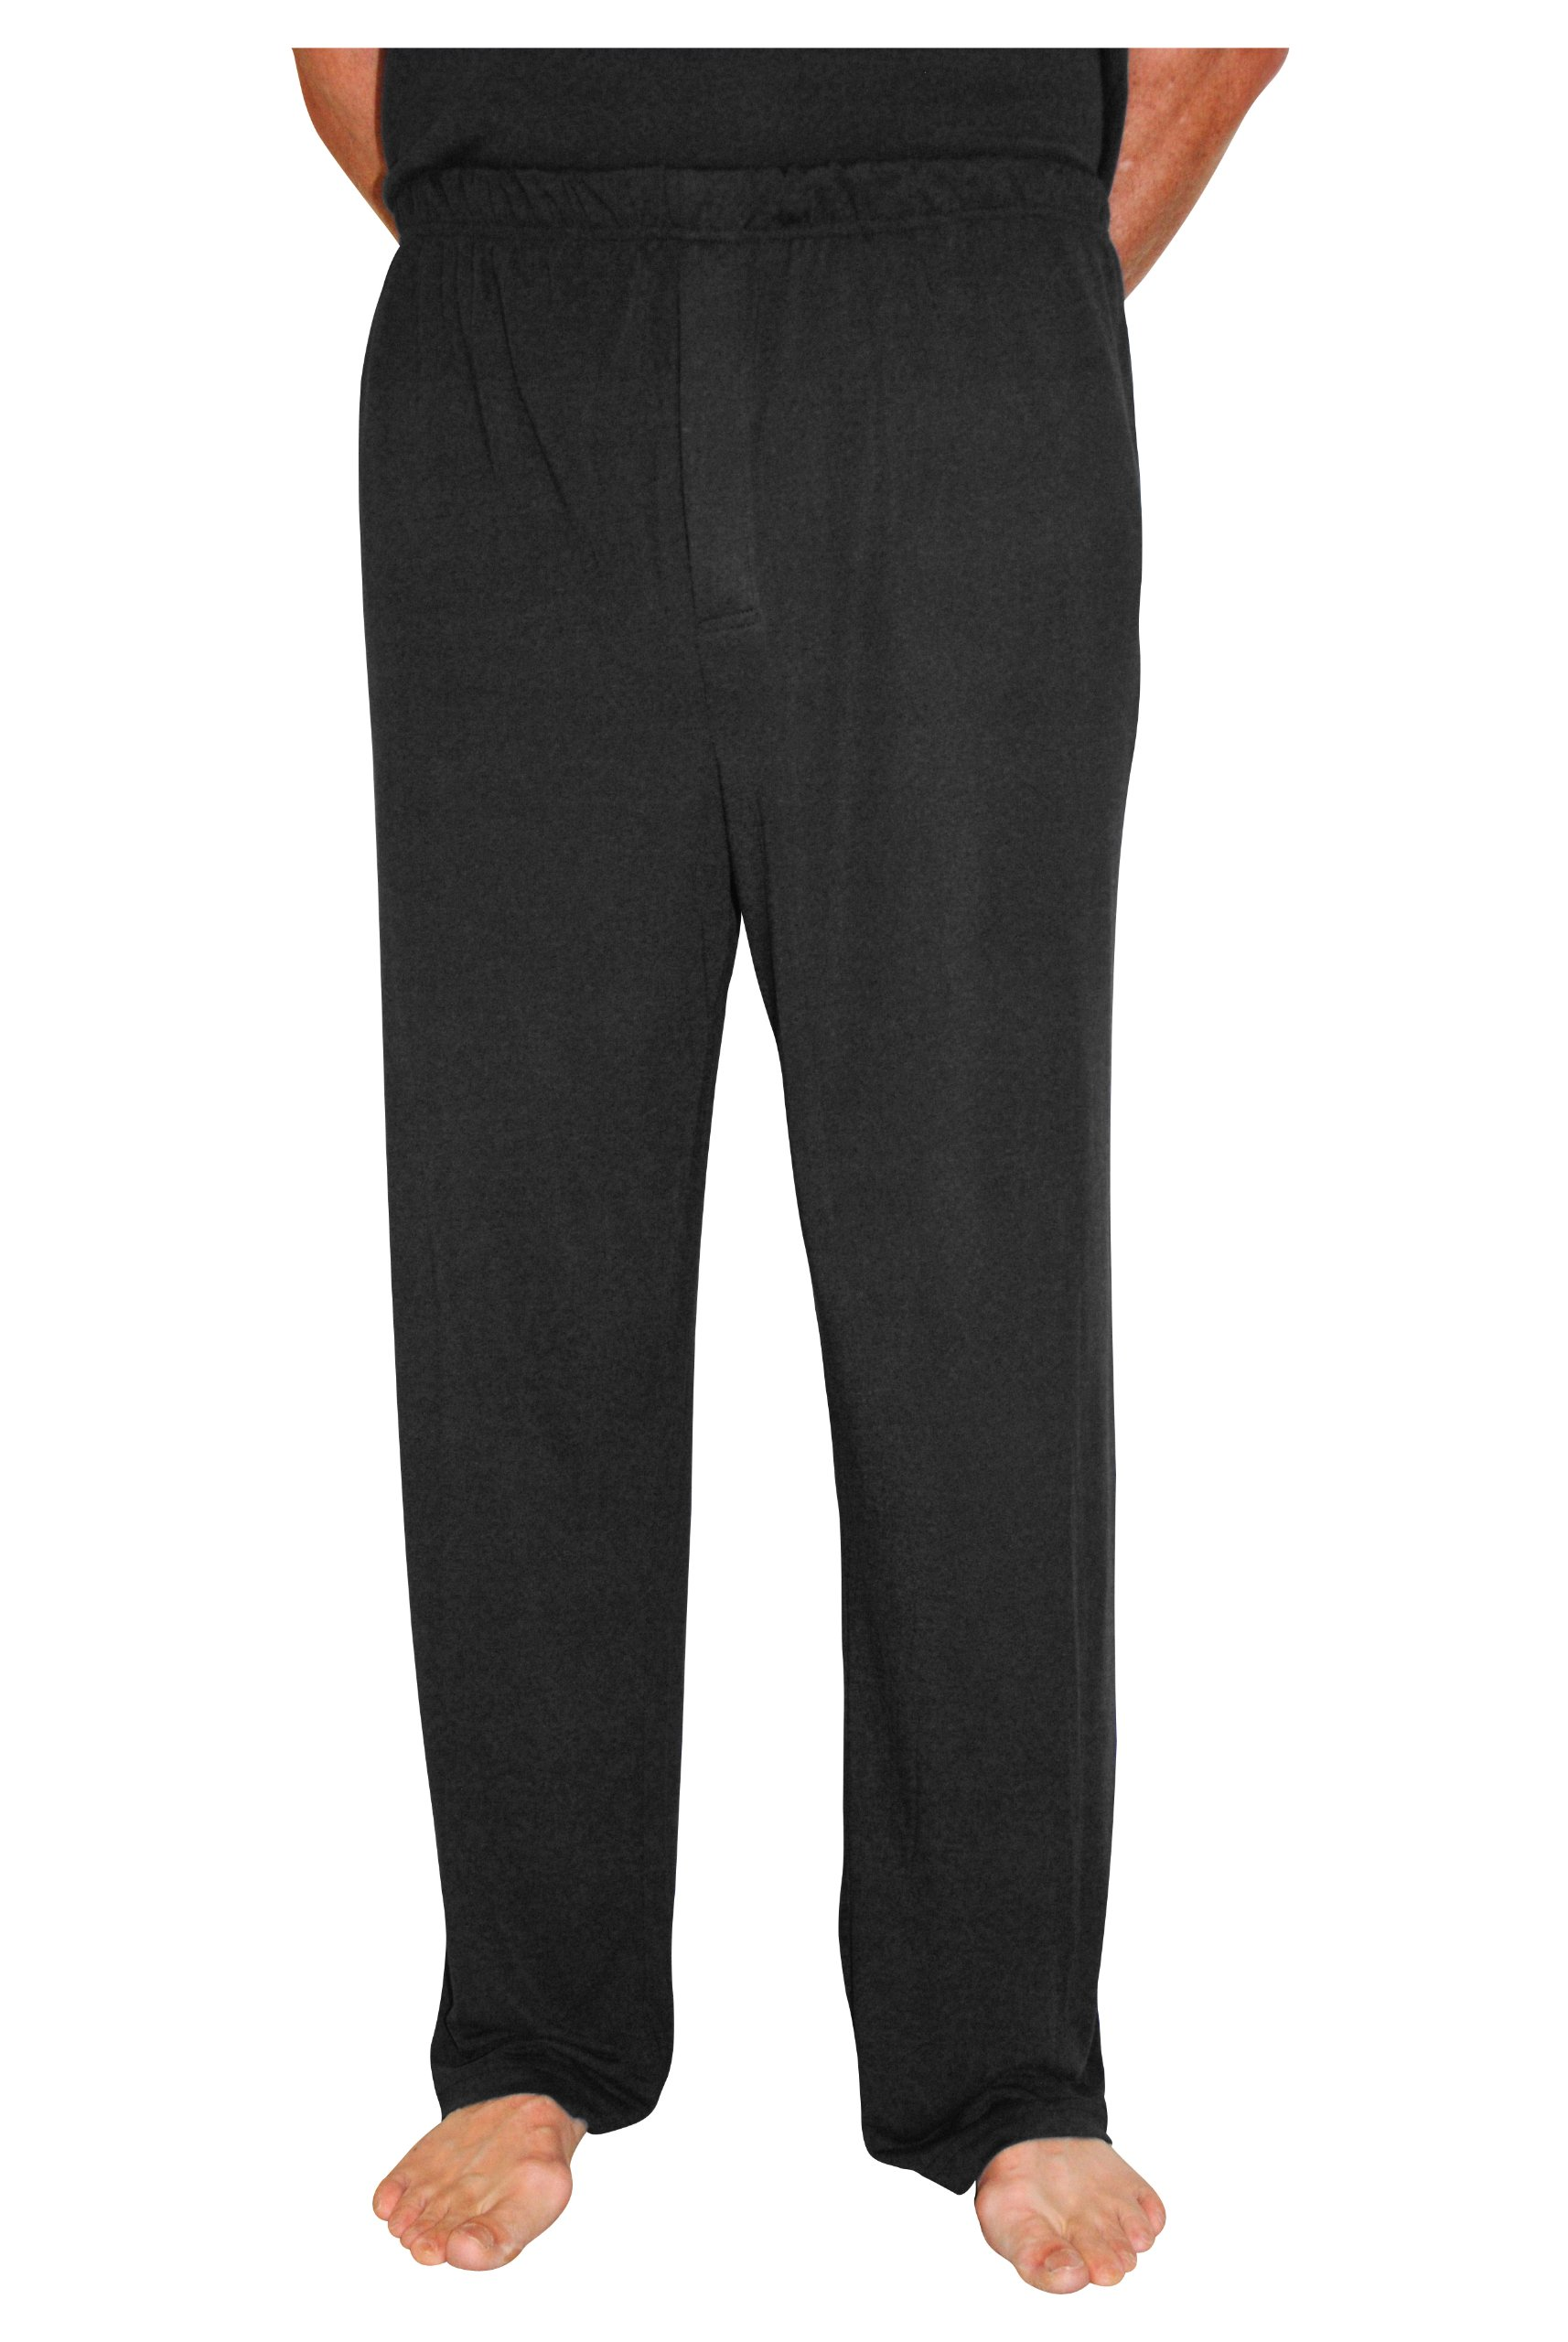 Cool-jams Moisture Wicking Men's Pajama Pant for Travel and Hot Nights (Medium, Black)